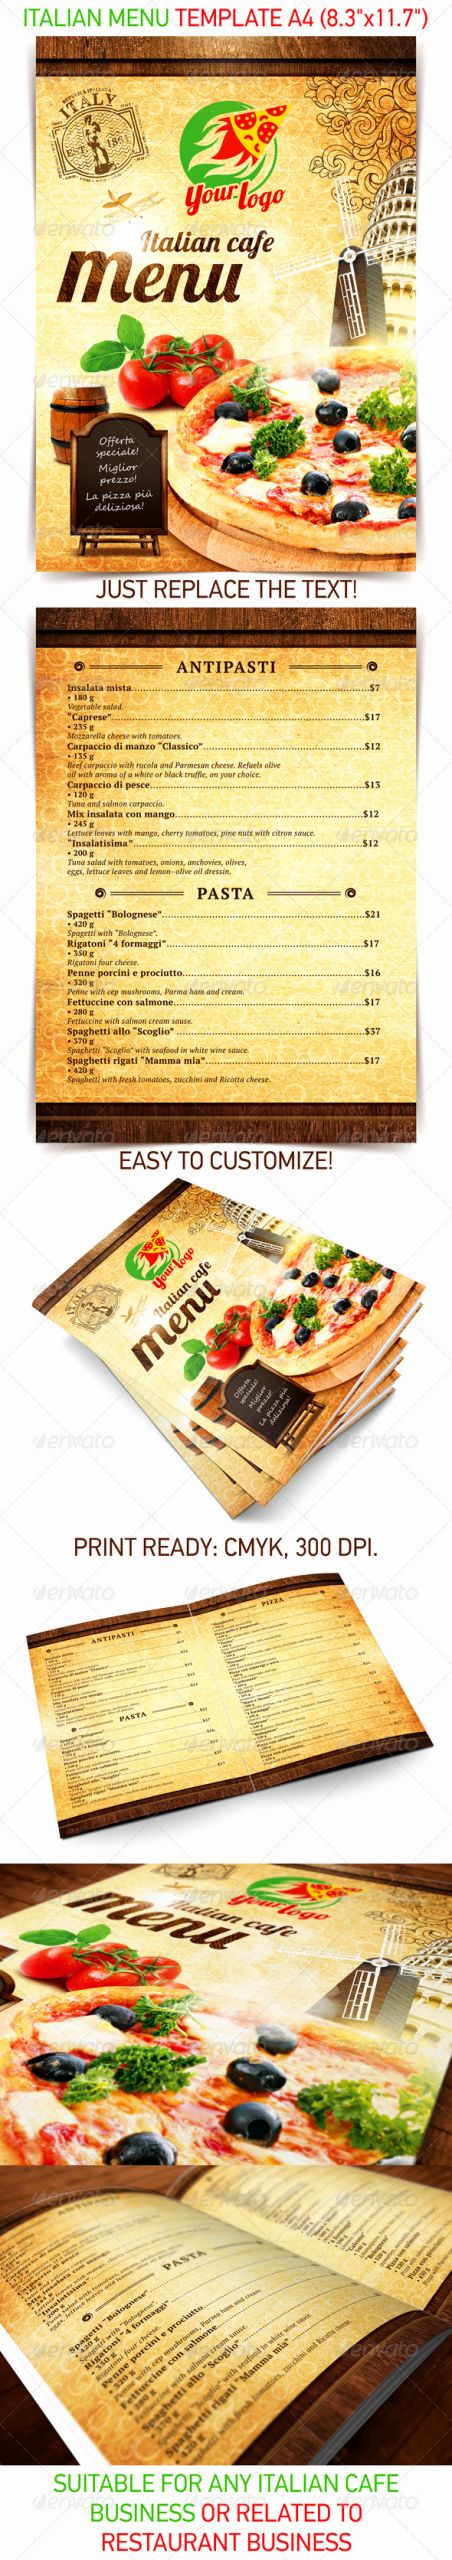 Italian Restaurant Menu Template Beautiful Italian Menu Template Psd Template On Behance